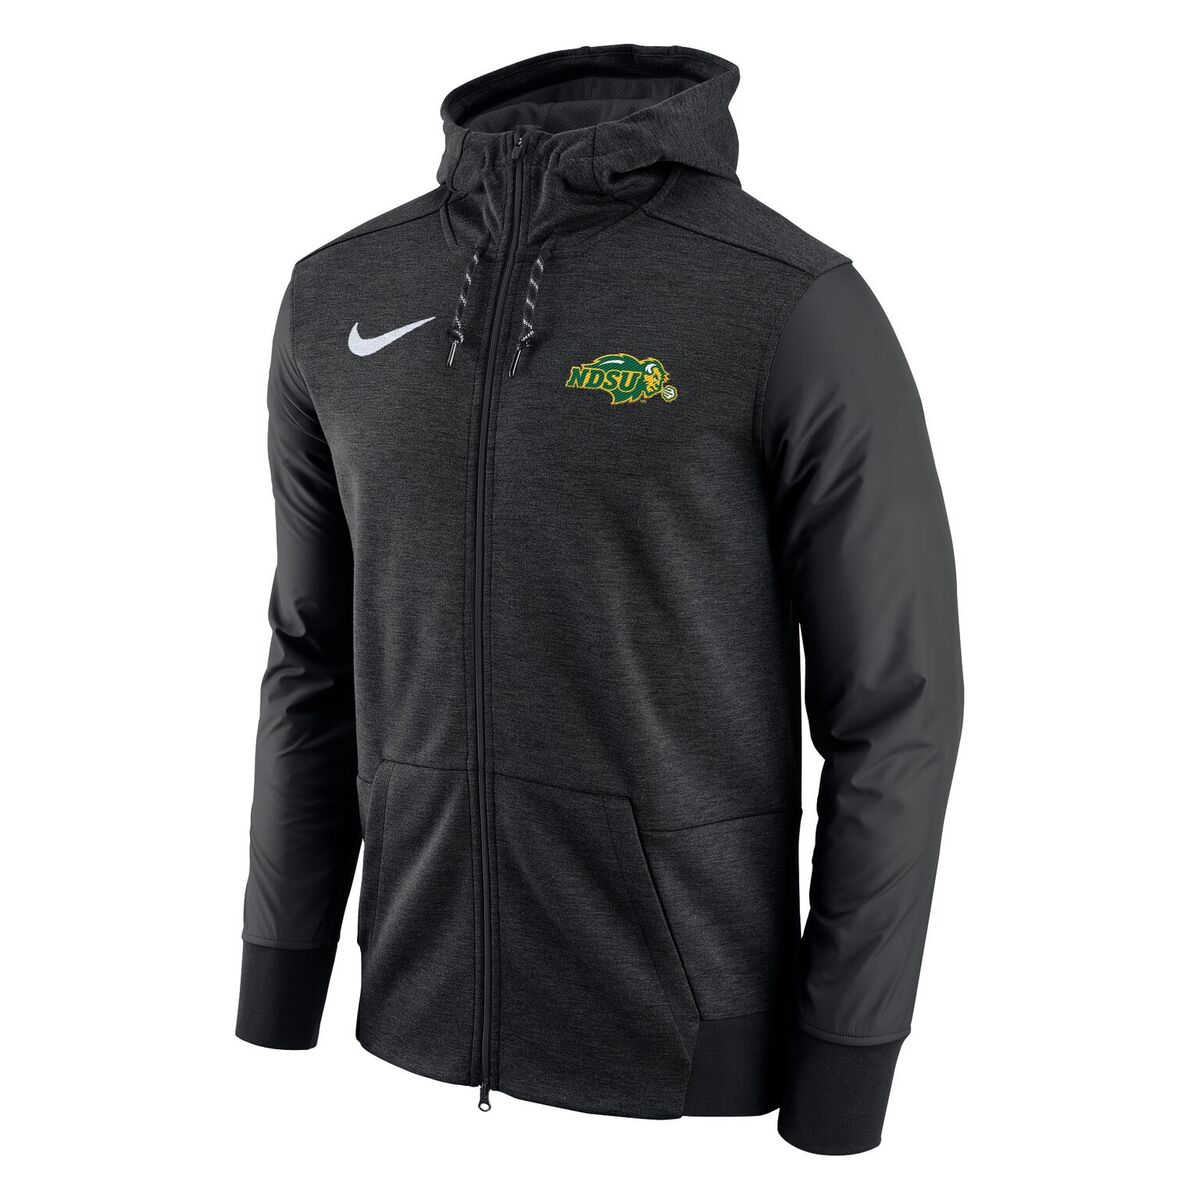 Jacket - by Nike 2017 Sideline Collection